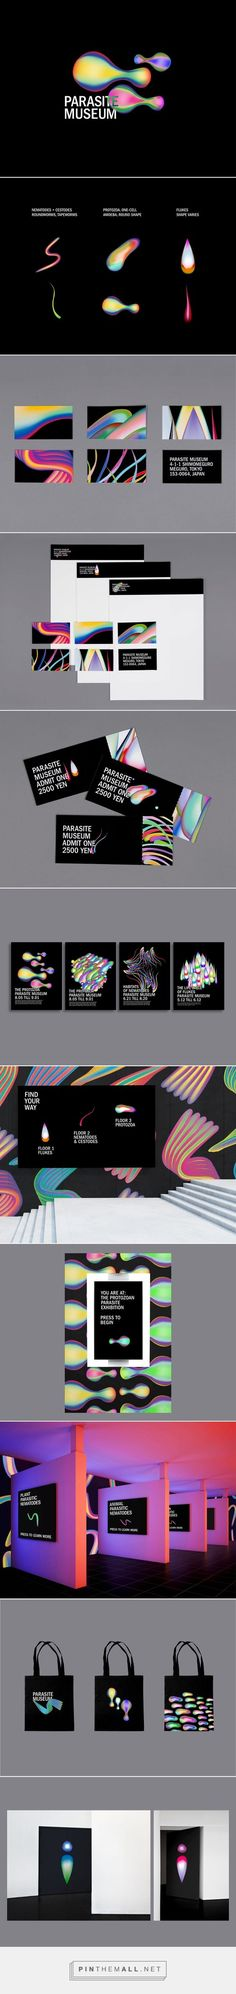 Parasite Museum on Behance by Joclyn Tsiah curated by Packaging Diva. Rebranding of the existing Meguro Parasite Museum of Tokyo. Not a whole lot of packaging but I couldn't resist the colors and the design : ):